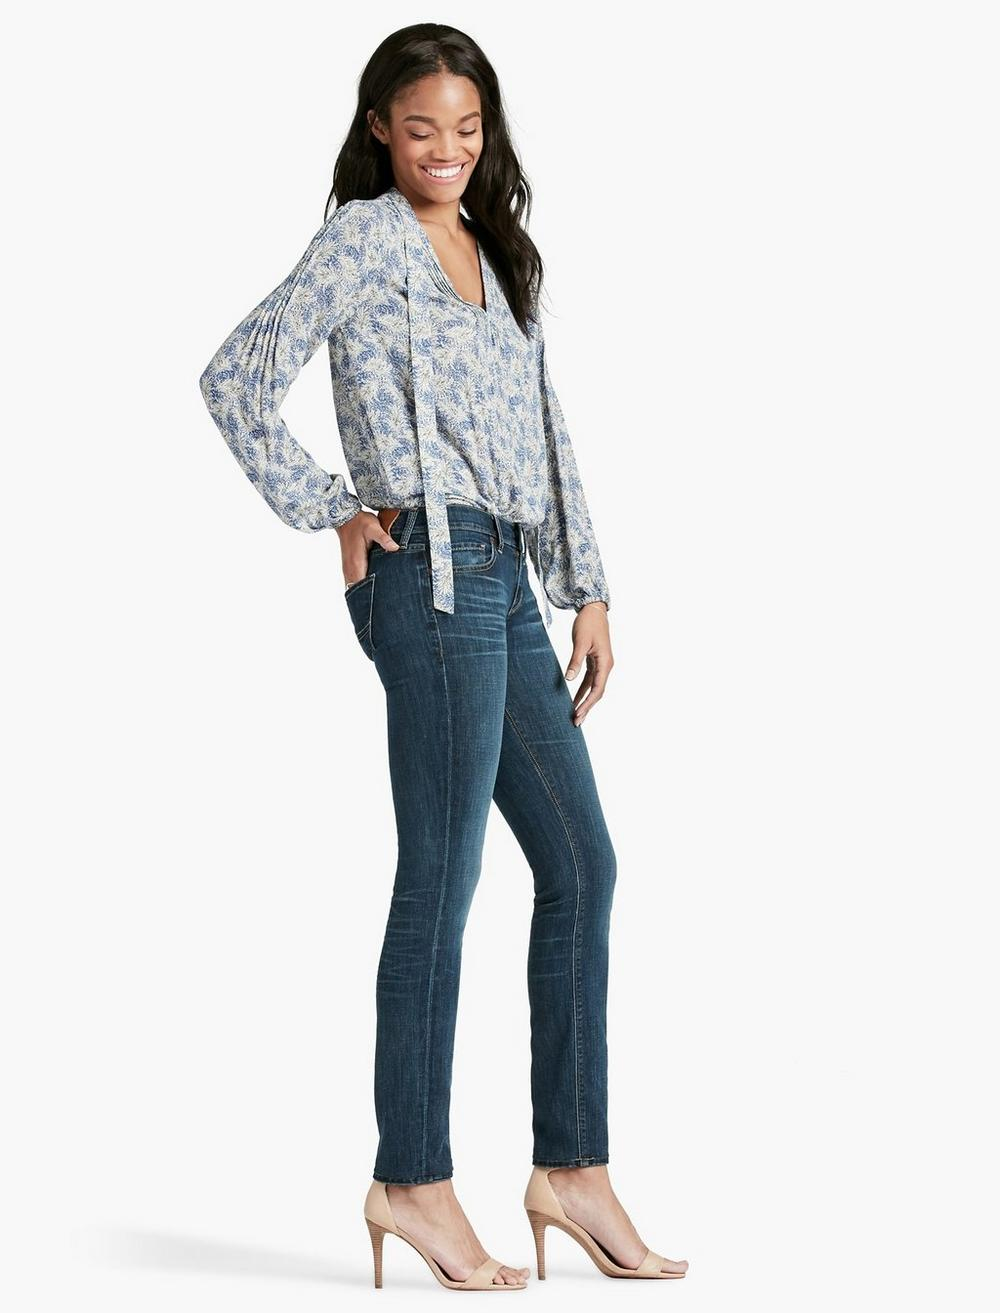 SOFIA MID RISE SKINNY JEAN IN BARRIER, image 2